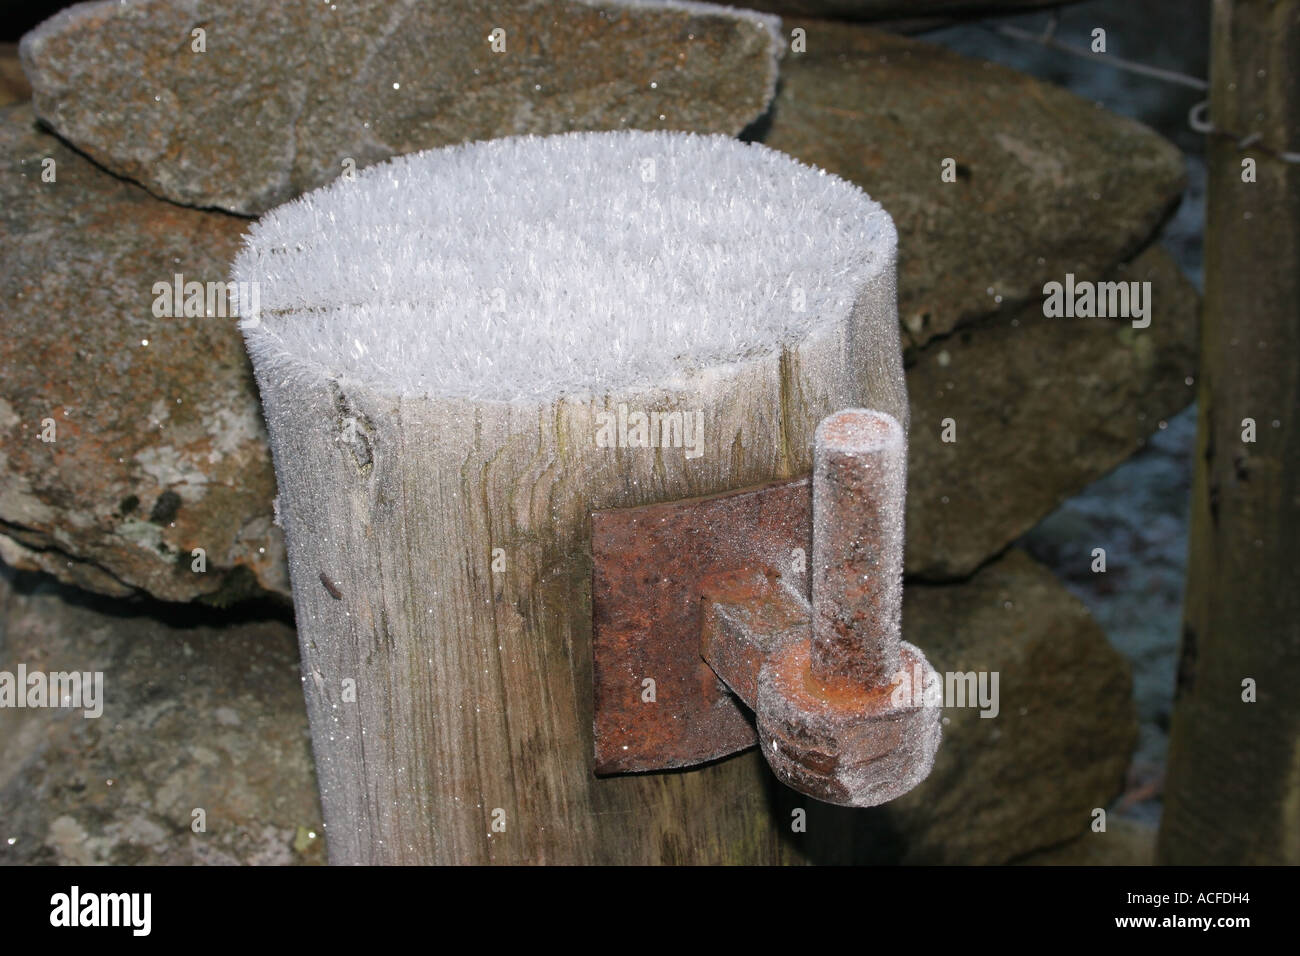 Frost Crystals on a Gatepost and Hinge - Stock Image